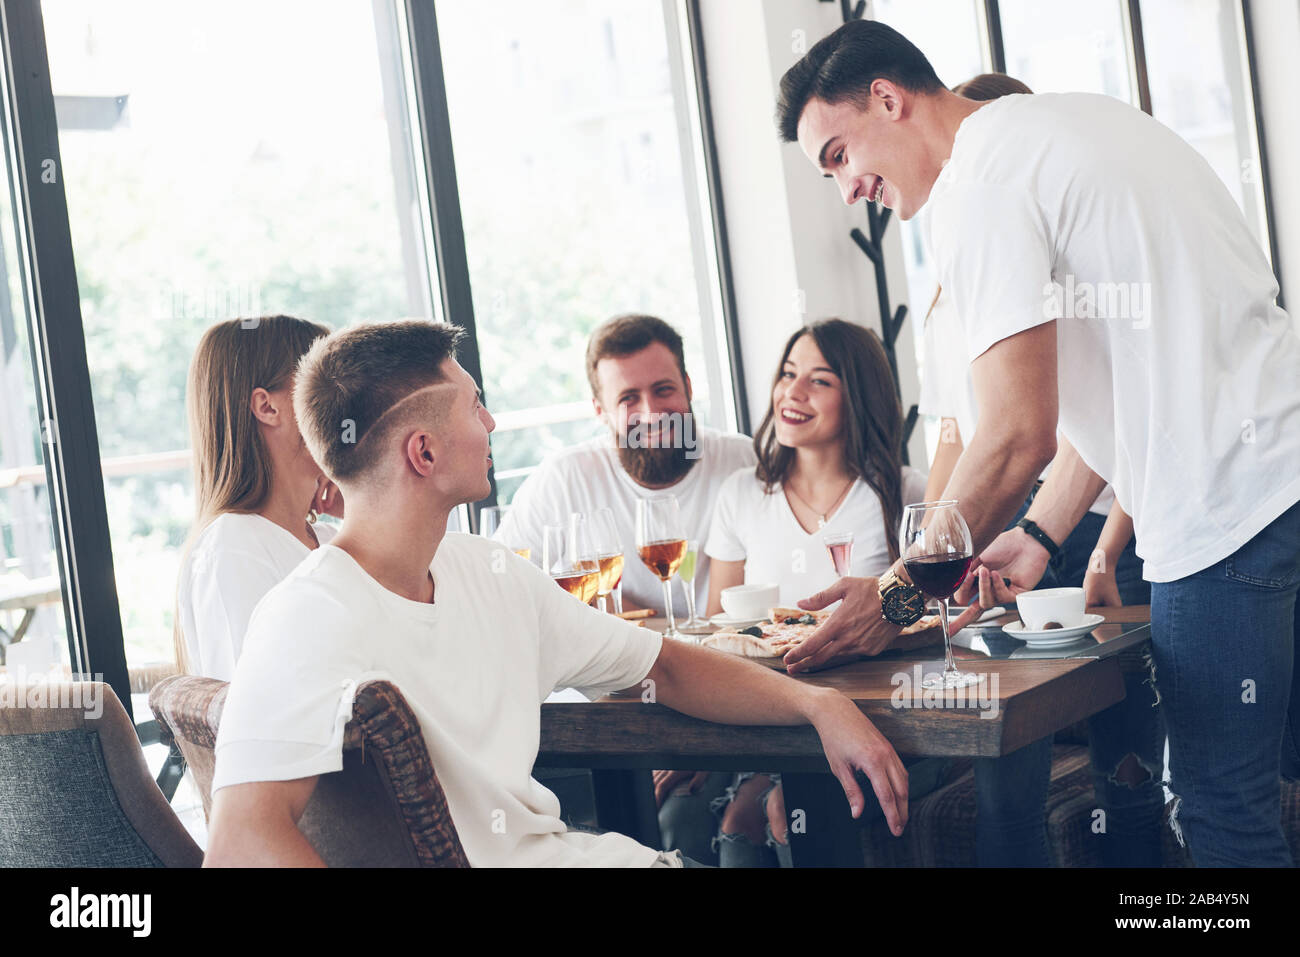 Tasty pizza on the table, with a group of young smiling people resting in the pub Stock Photo